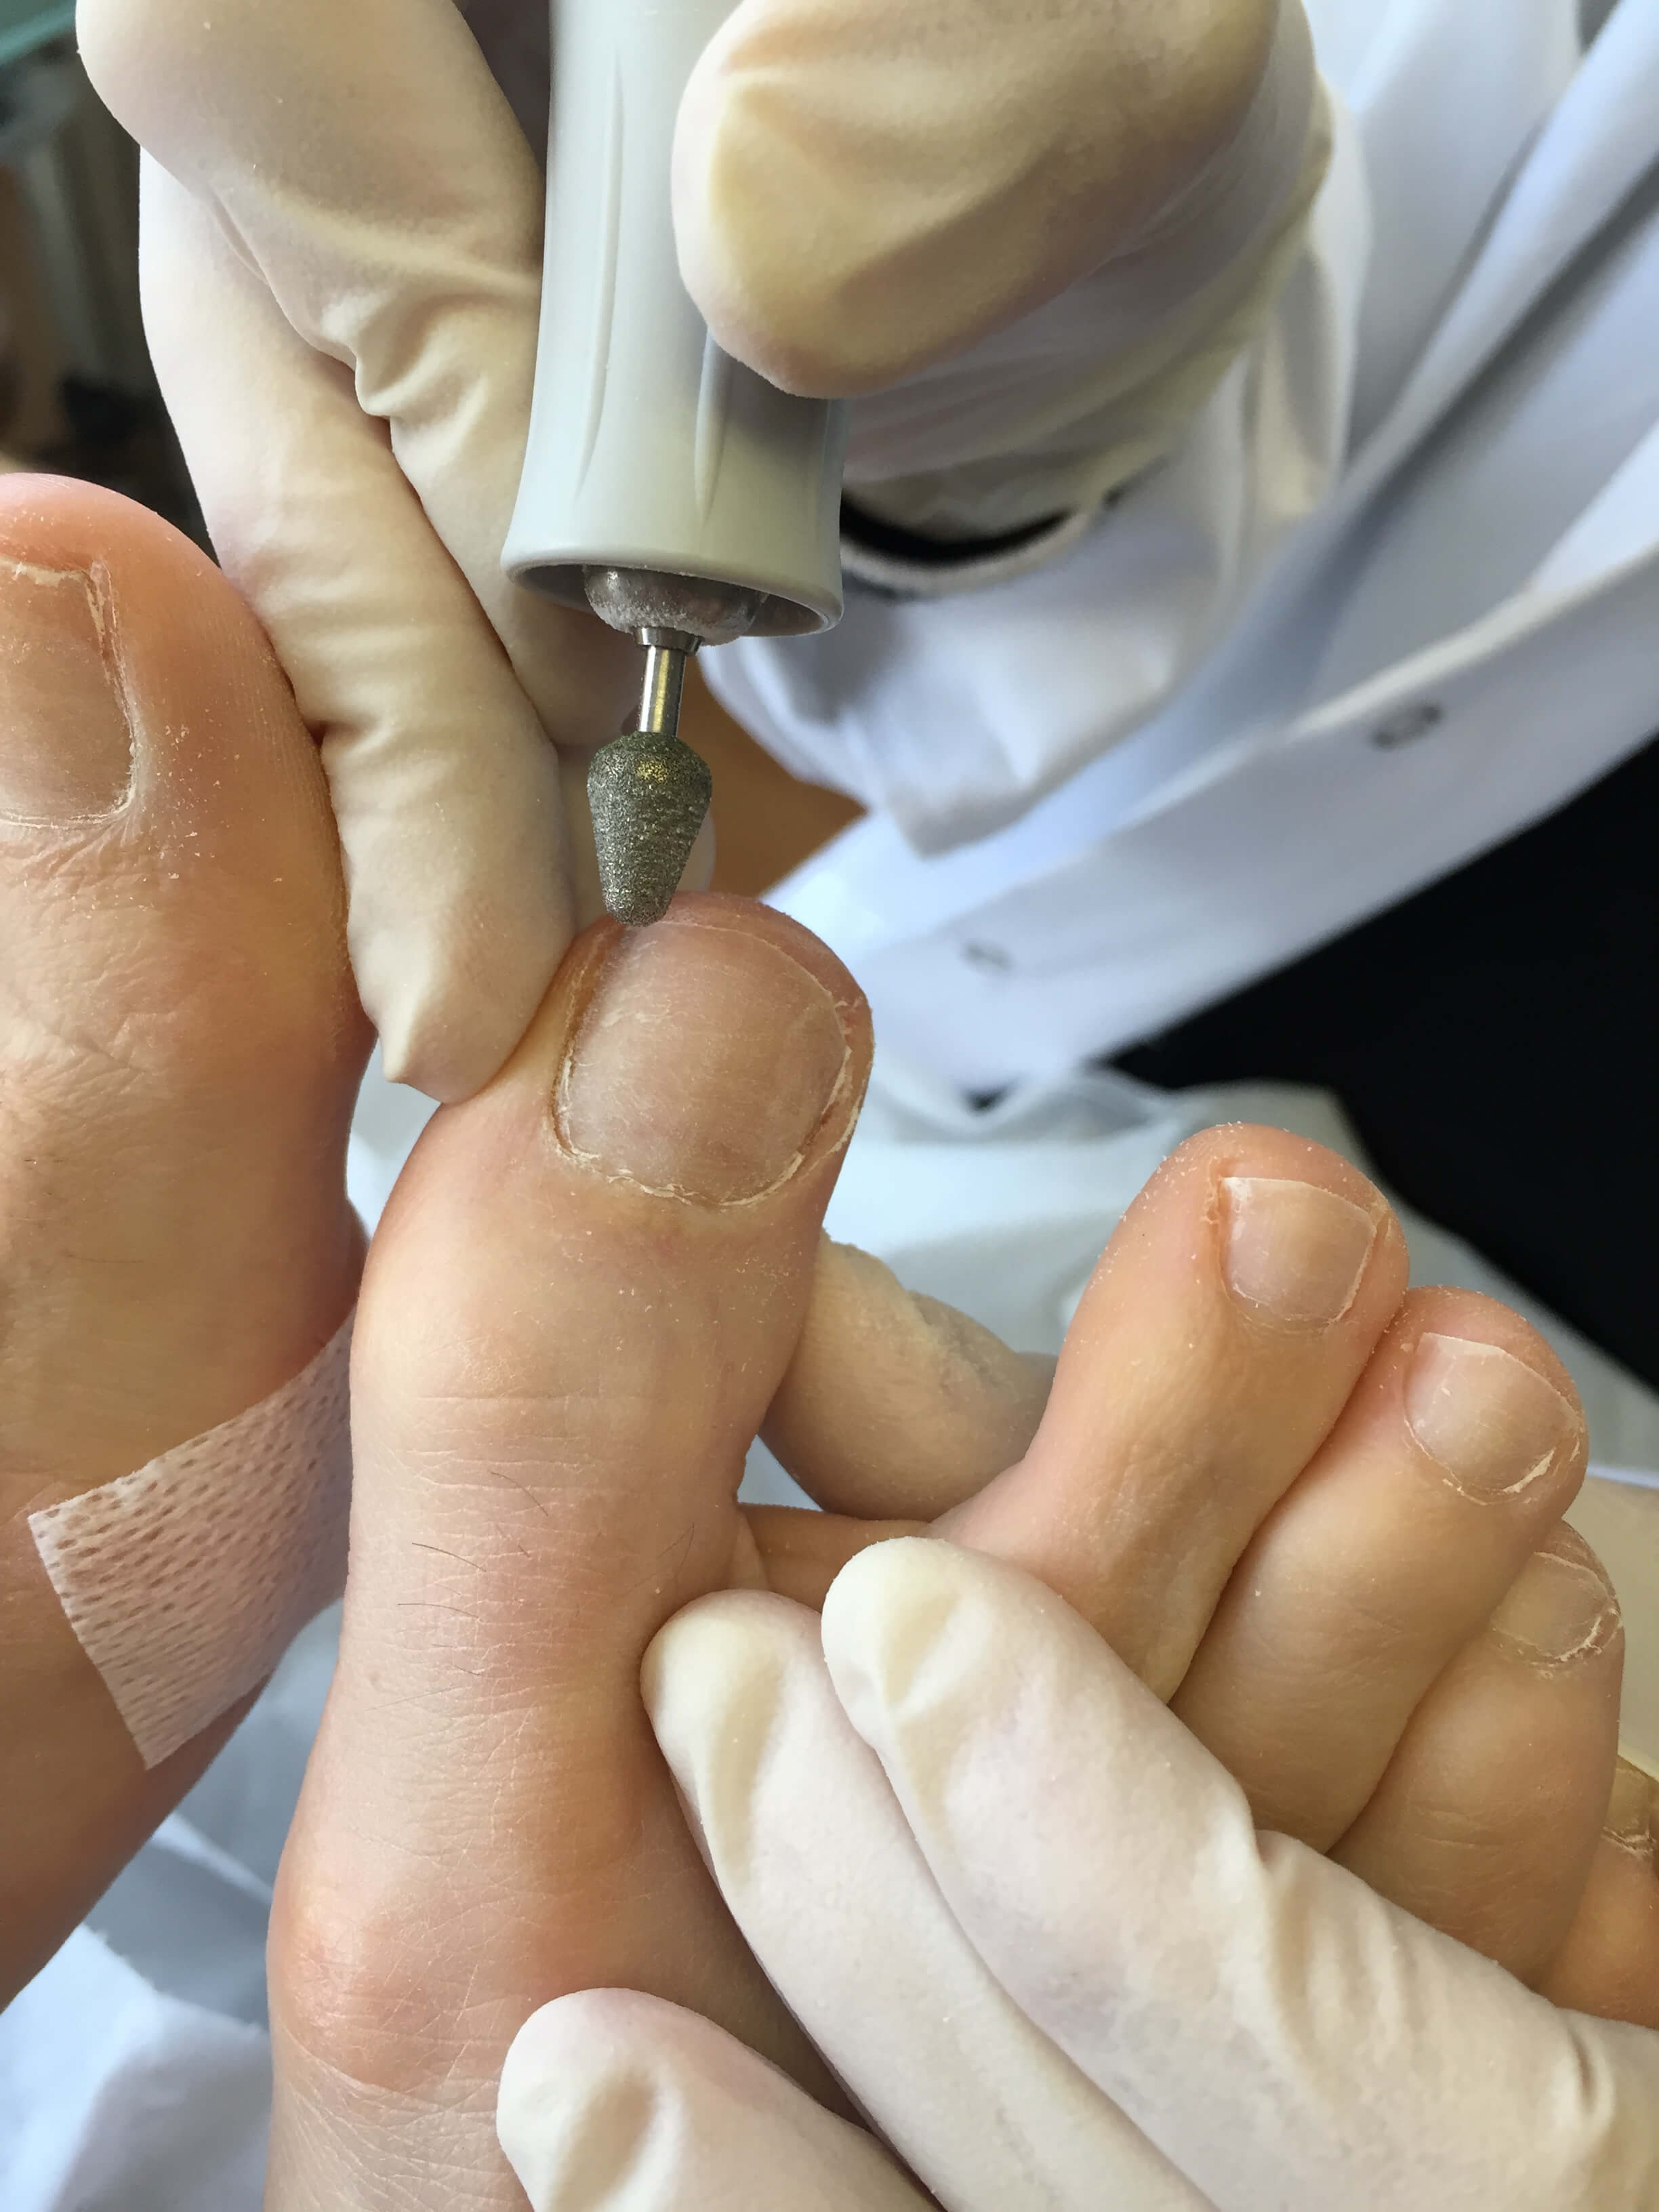 Fungal Nail Laser Treatment - Fitter Feet For LifeFitter